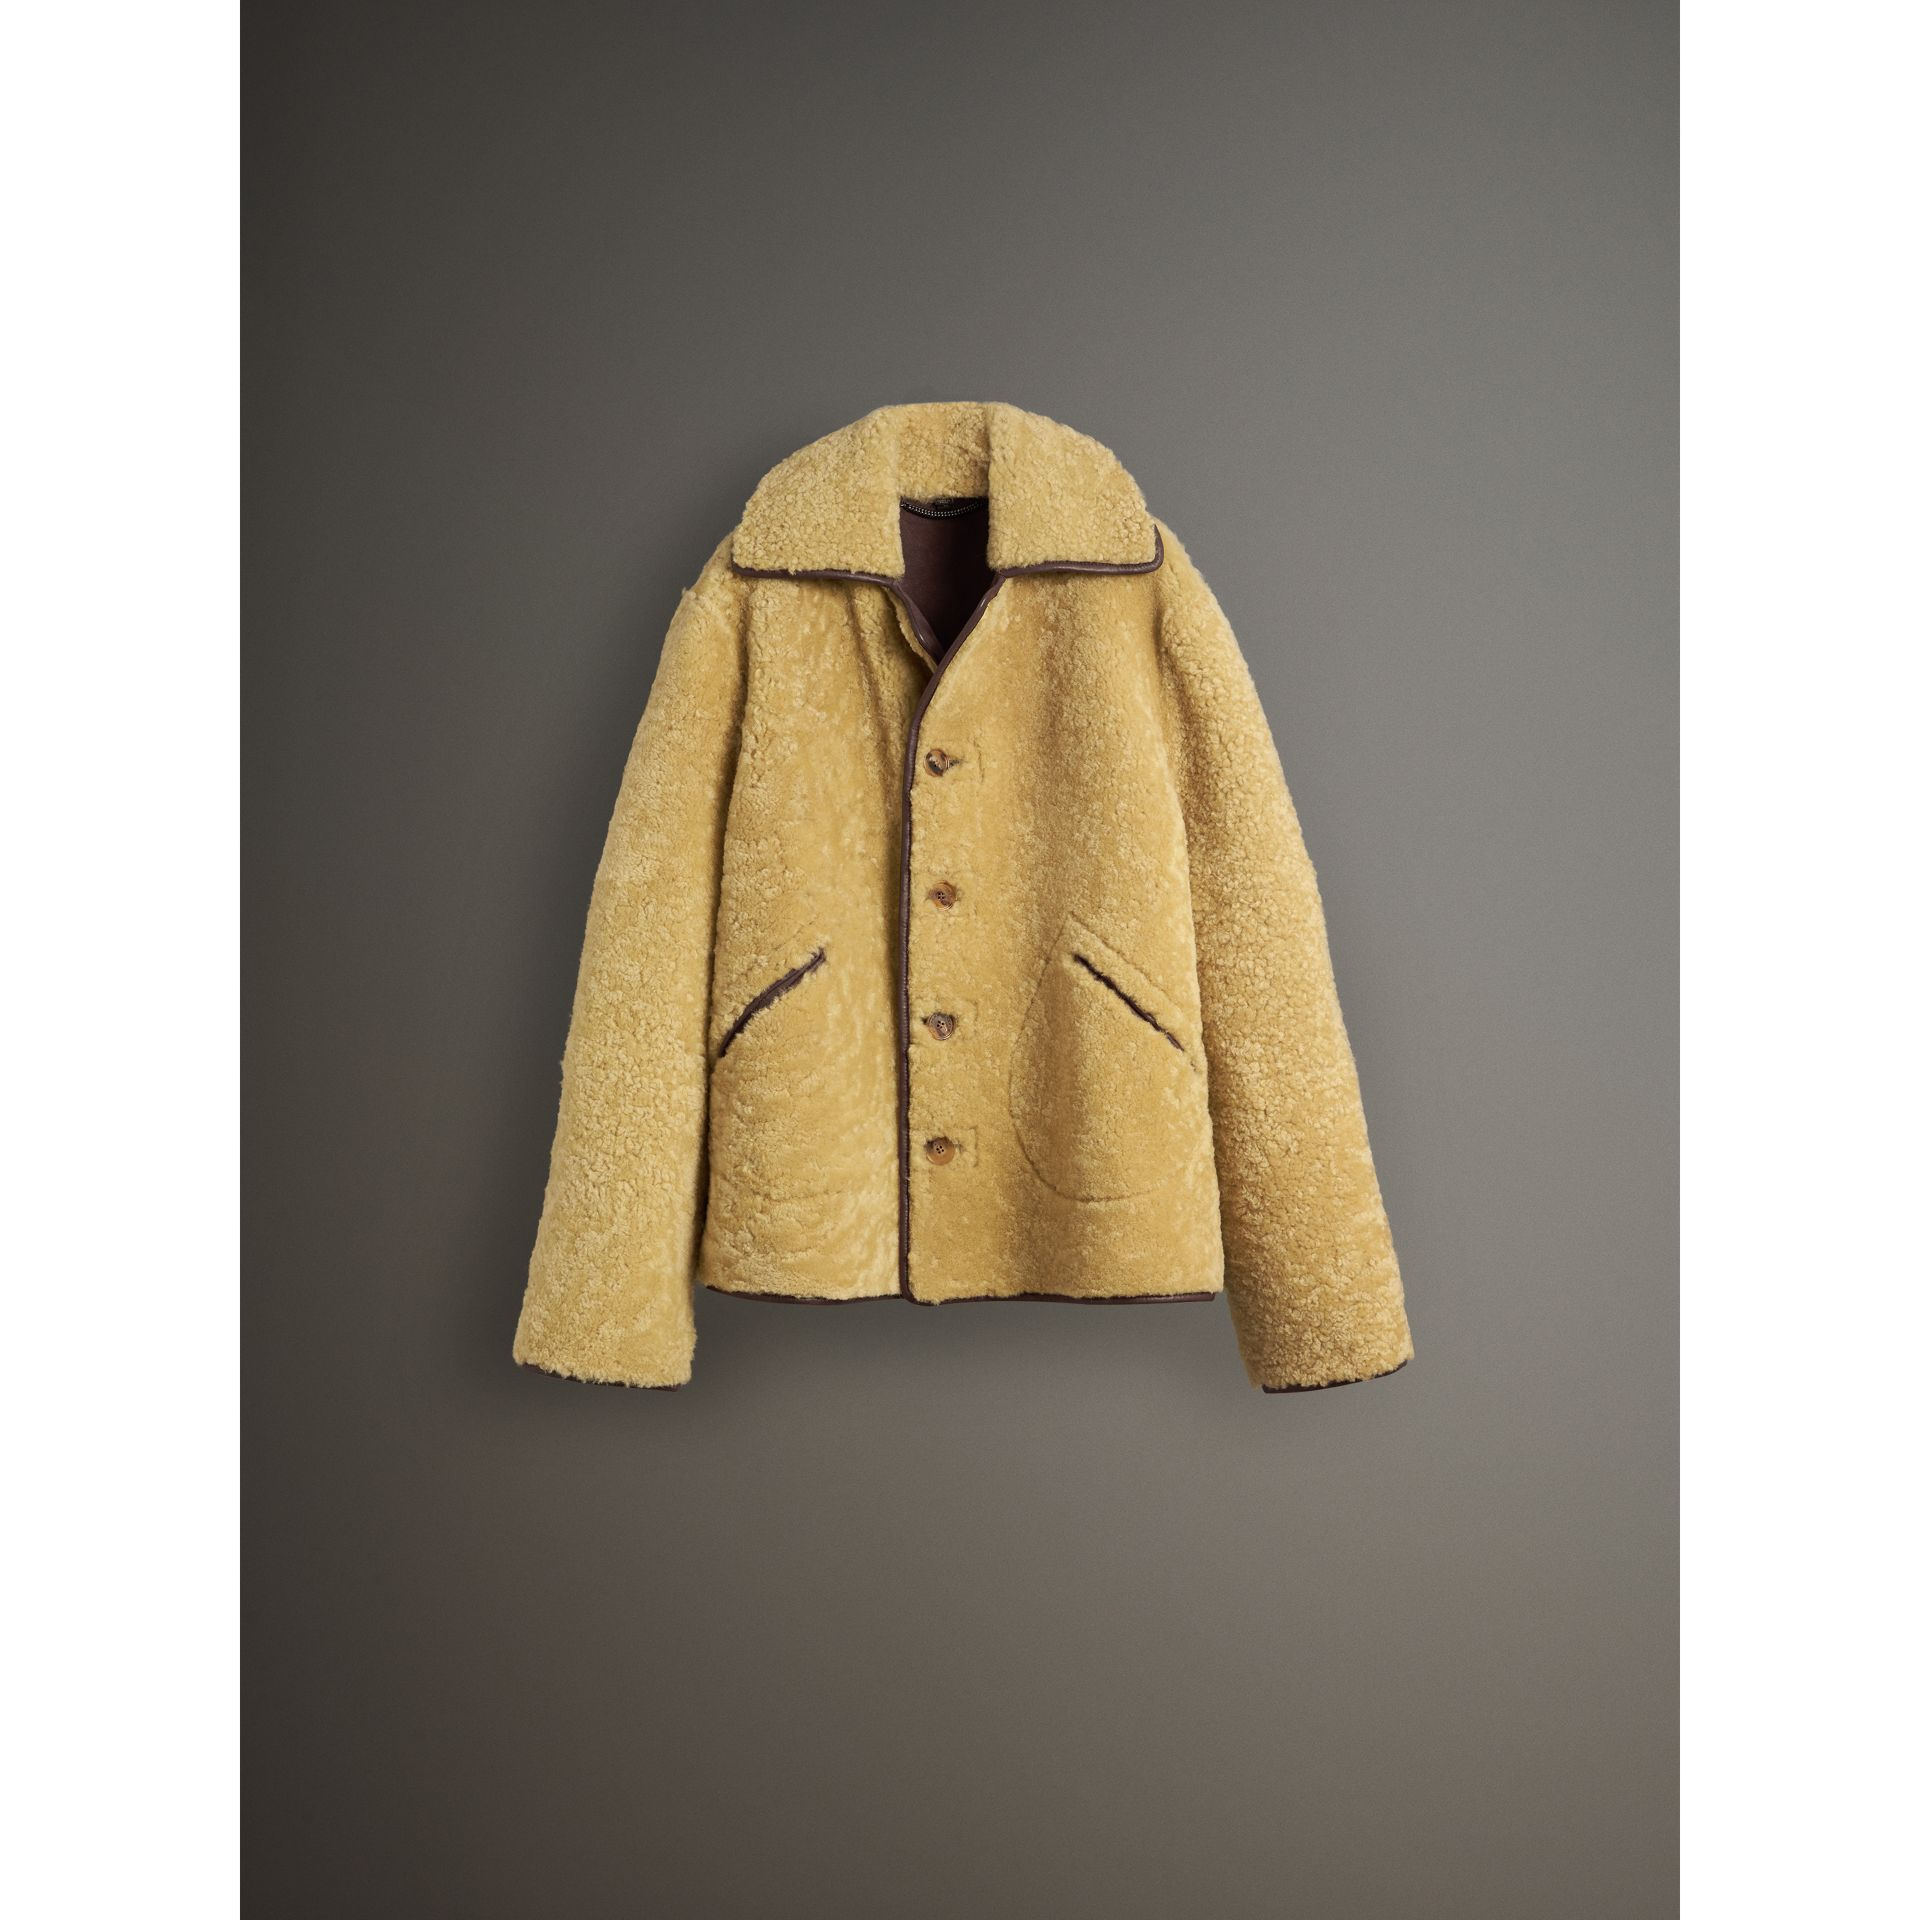 Relaxed Fit Shearling and Lambskin Jacket in Chocolate/light Citrus - Men | Burberry United States - gallery image 4